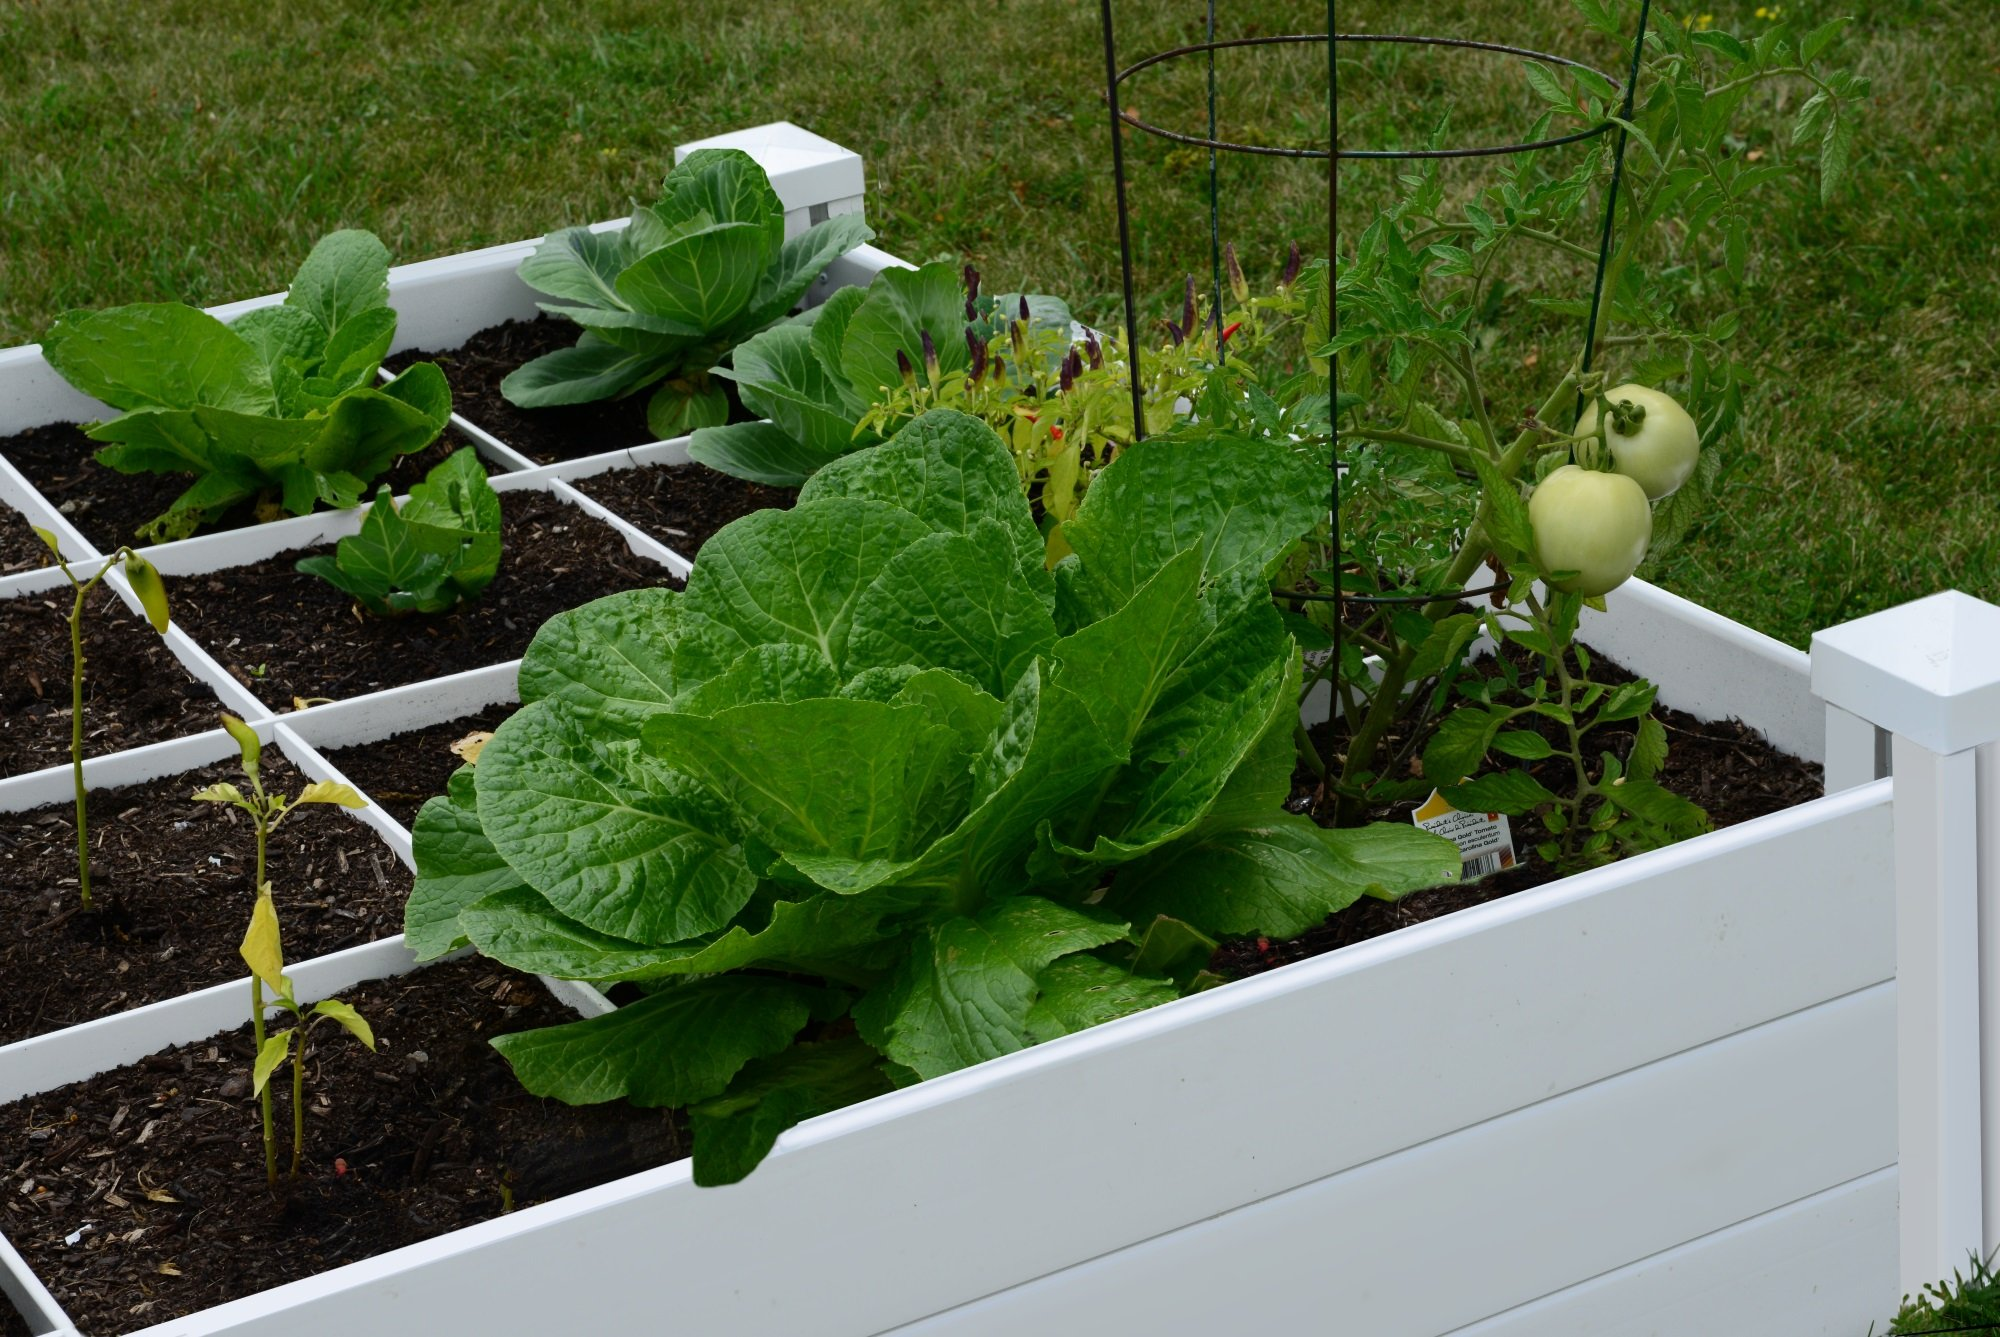 """Vita Gardens VT17104 Vita Bed with GRO 48in x 7.5in Garden with Grid, 7.38"""" H, White 3 Available in classic white Can combine more than one unit Grid system increases yield because plants can be planted closer together"""